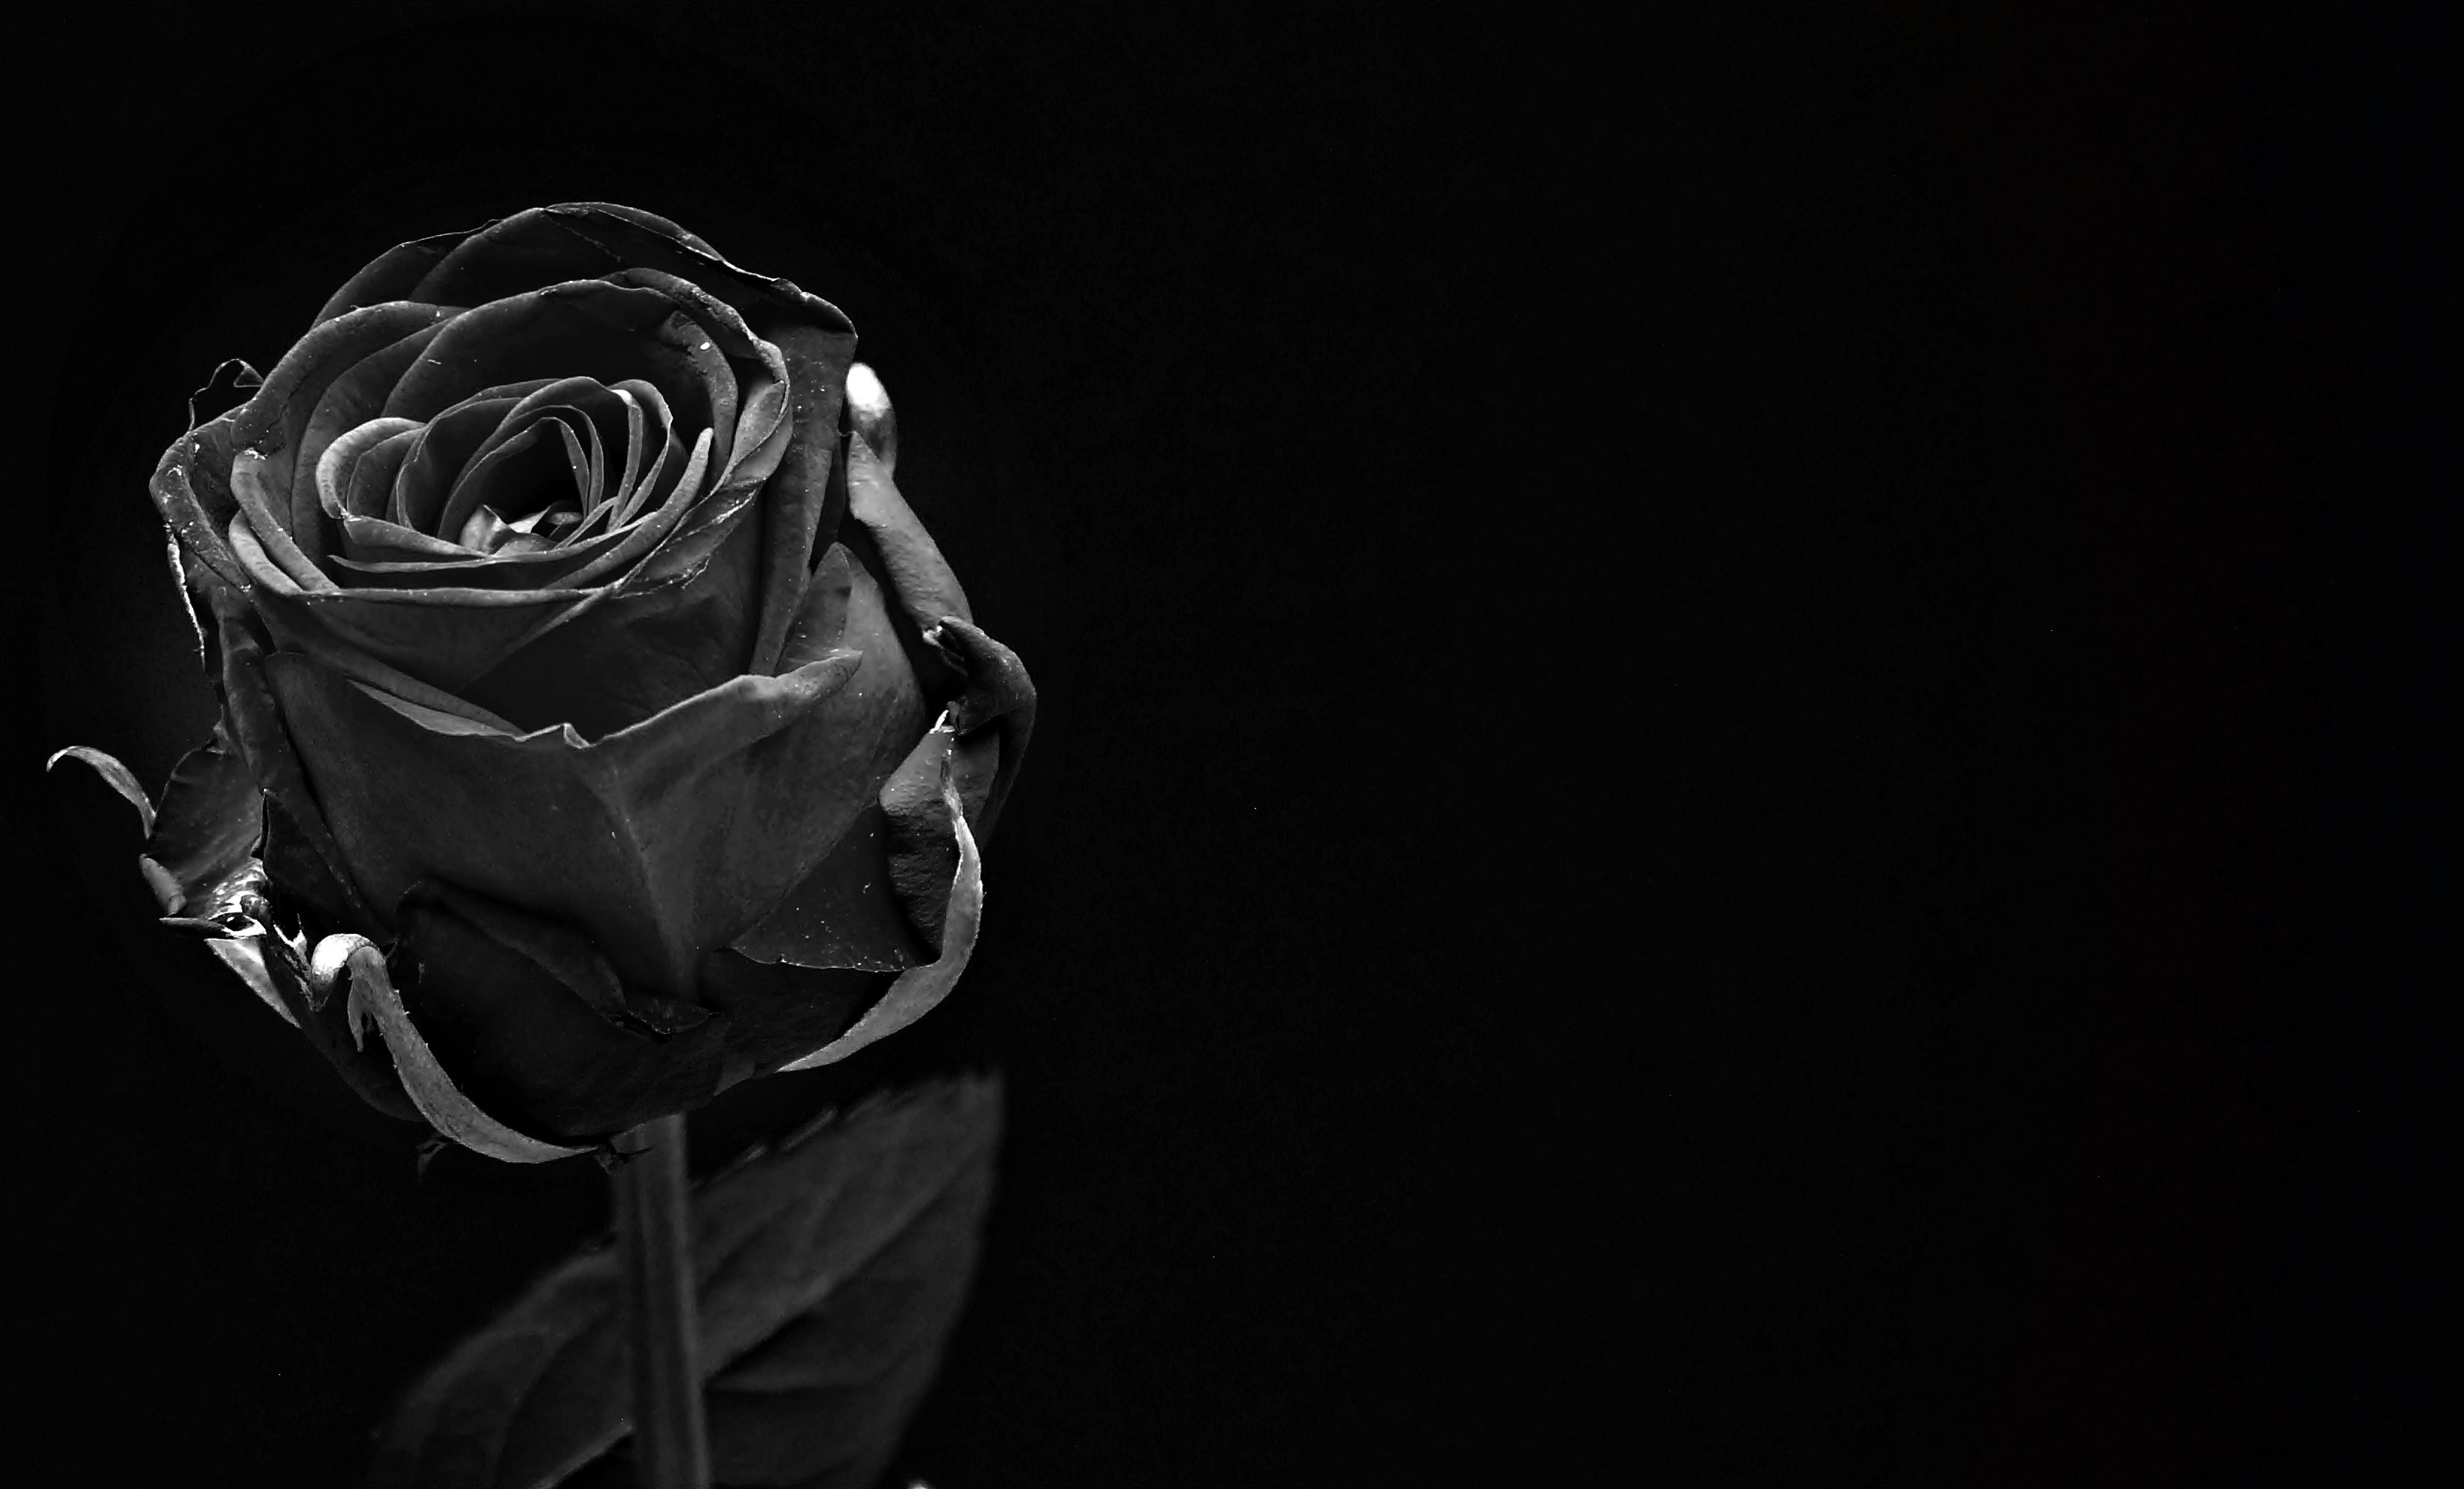 Falling Rose Petals Wallpaper Roses With Black Background 50 Images